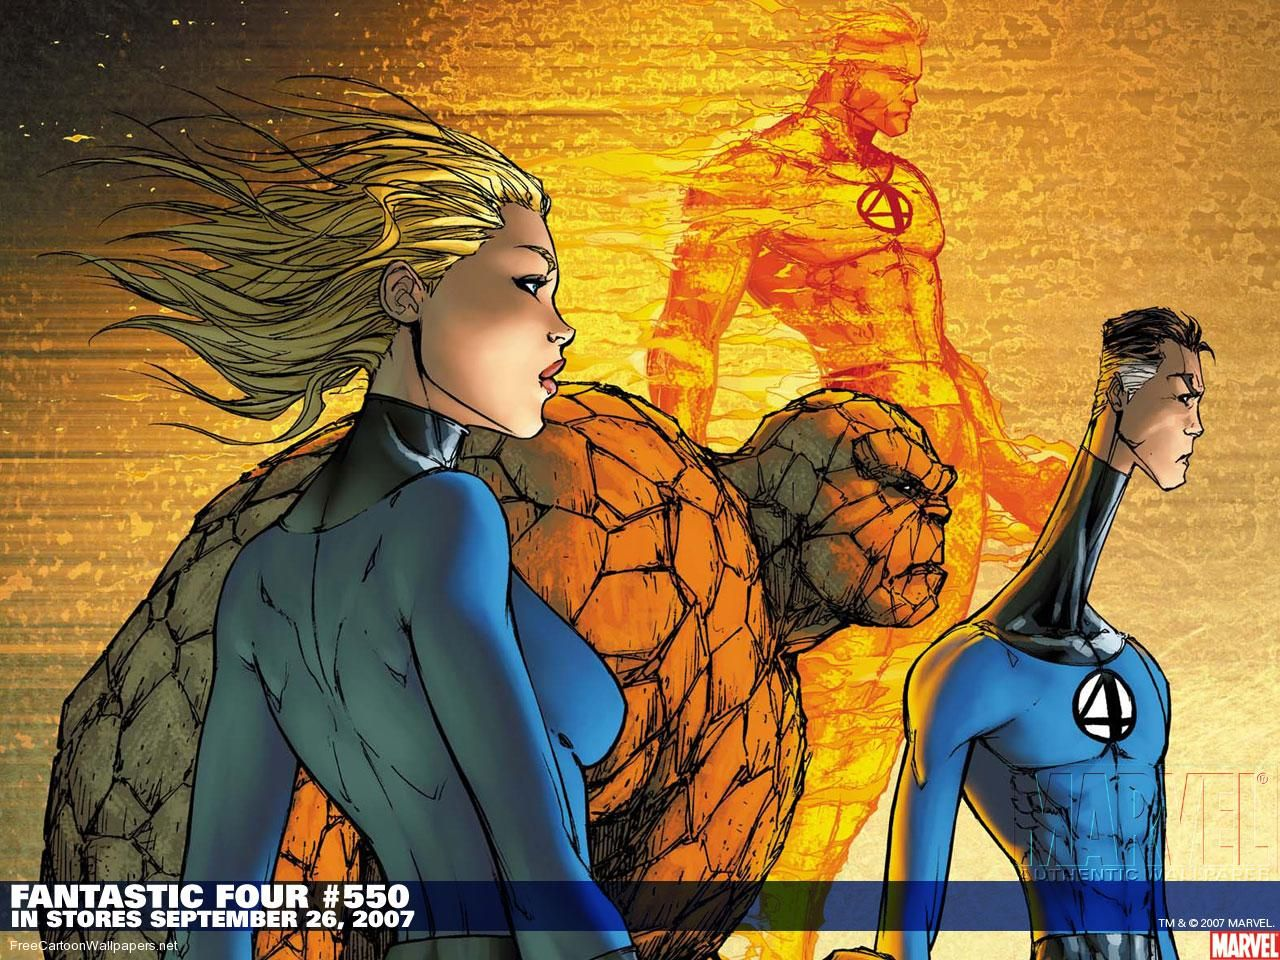 Fantastic Four 1 Fantastic Four 550 Wallpaper Captain America Wallpaper Marvel Wallpaper Marvel